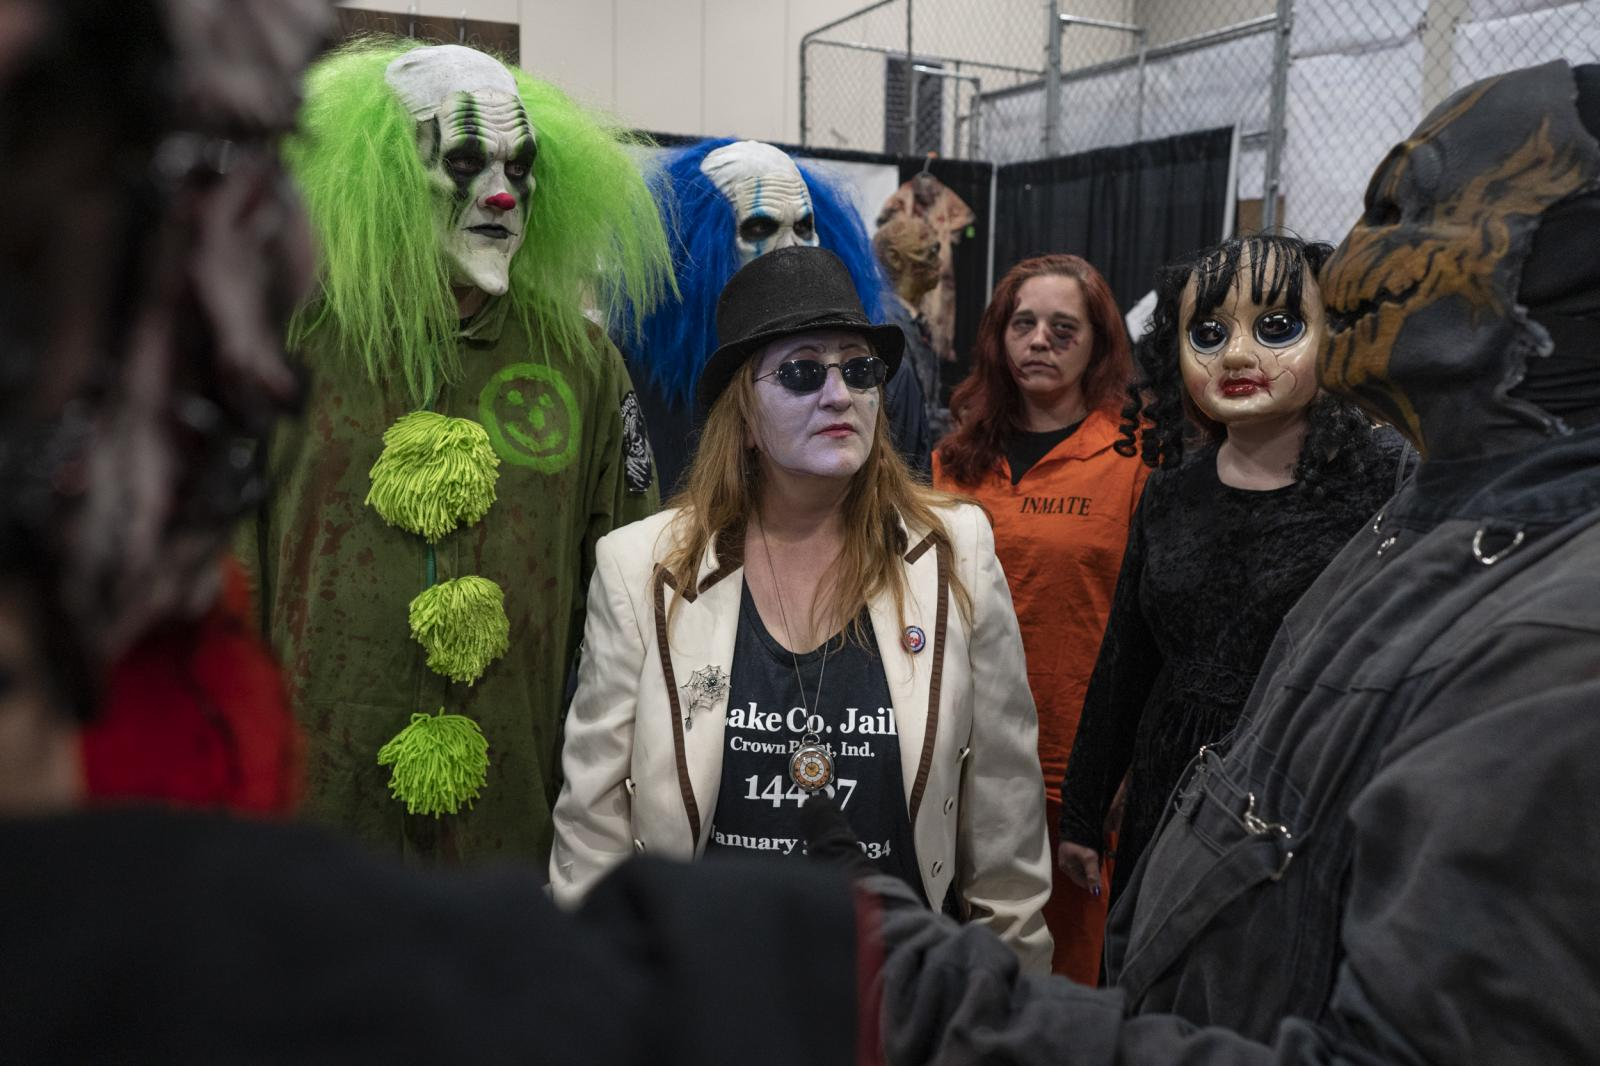 Sandy Boyd, center, shares ideas with other haunted business owners about creating a support network to help promote their businesses during the Midwest Haunters Convention at Renaissance Schaumburg Convention Center Hotel in Schaumburg, Ill. Sunday June 9, 2019. The country's second-largest haunted house trade show drew a crowd of 6,000 people.